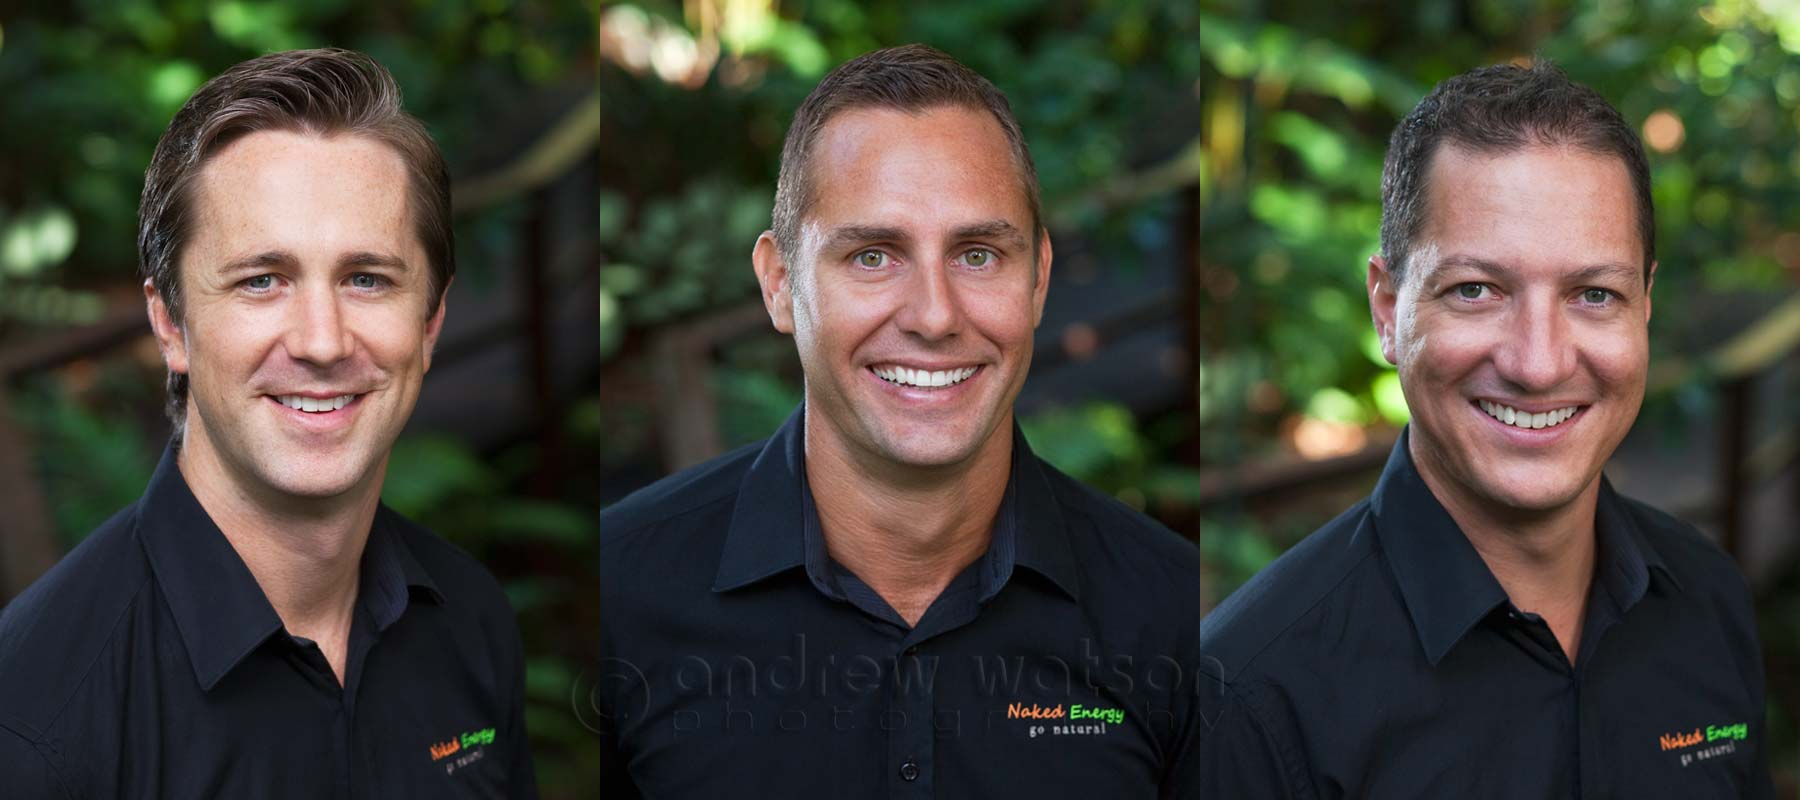 Corporate Photography - Location corporate headshots for renewable energy company